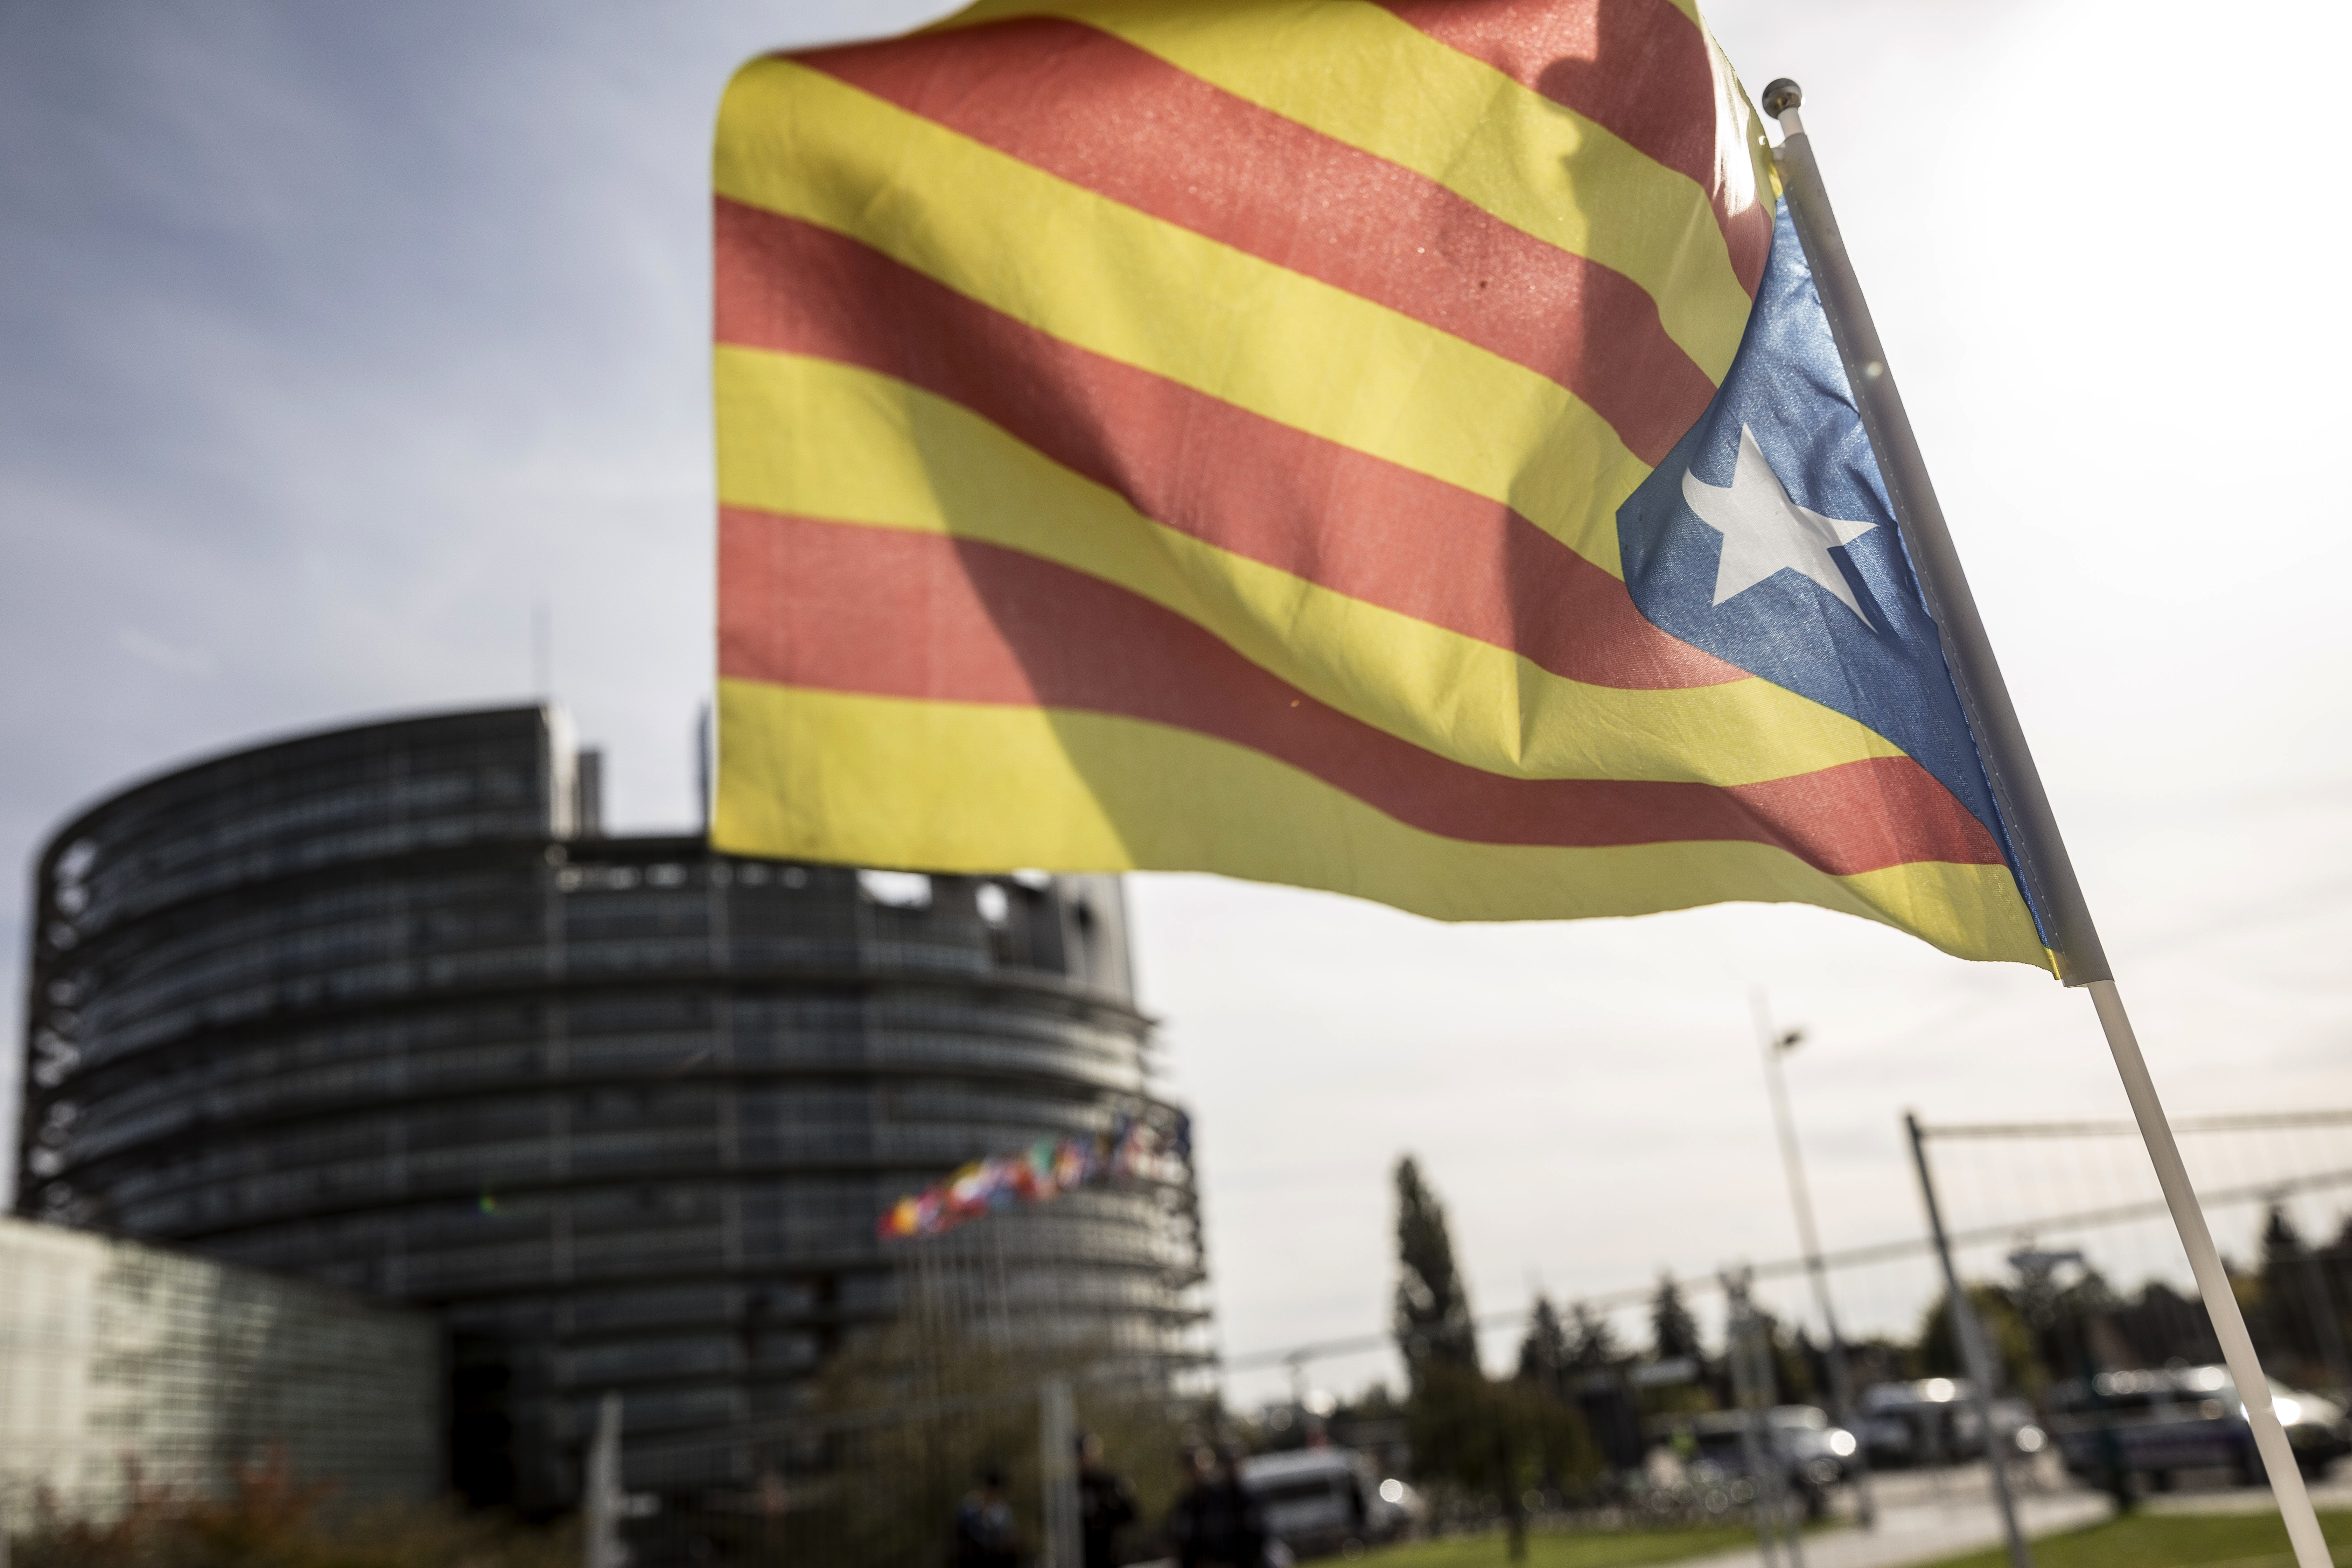 A demonstrator waves a Catalan flag in support of the disputed independence vote Sunday in Catalonia during a protest in front of the European Parliament in Strasbourg, France, Oct. 4, 2017.